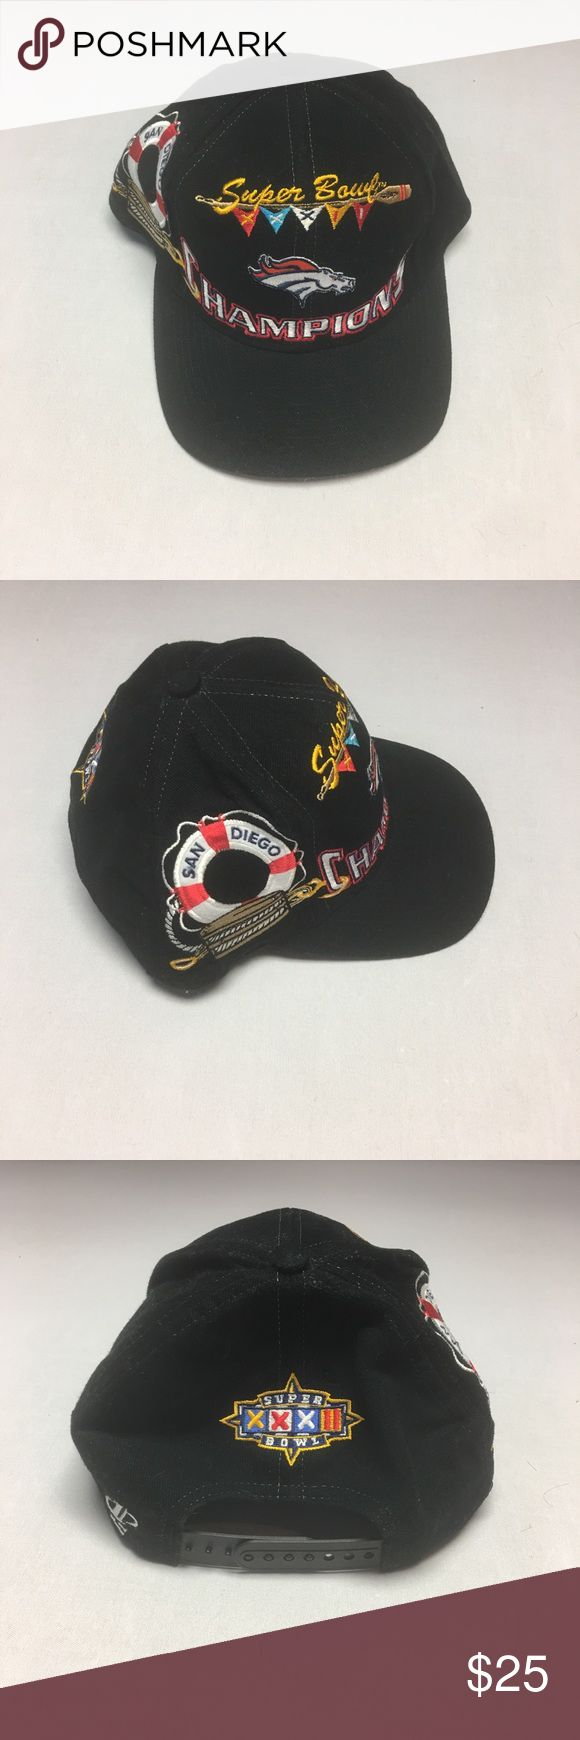 Vintage Denver Broncos Super Bowl XXXII CHAMPS Hat Cool gently worn Vintage Denver Broncos Super Bowl XXXII Champs Snapback Hat. Hat is in excellent condition. All of the cool graphics on this hat are embroidered. Vintage Accessories Hats